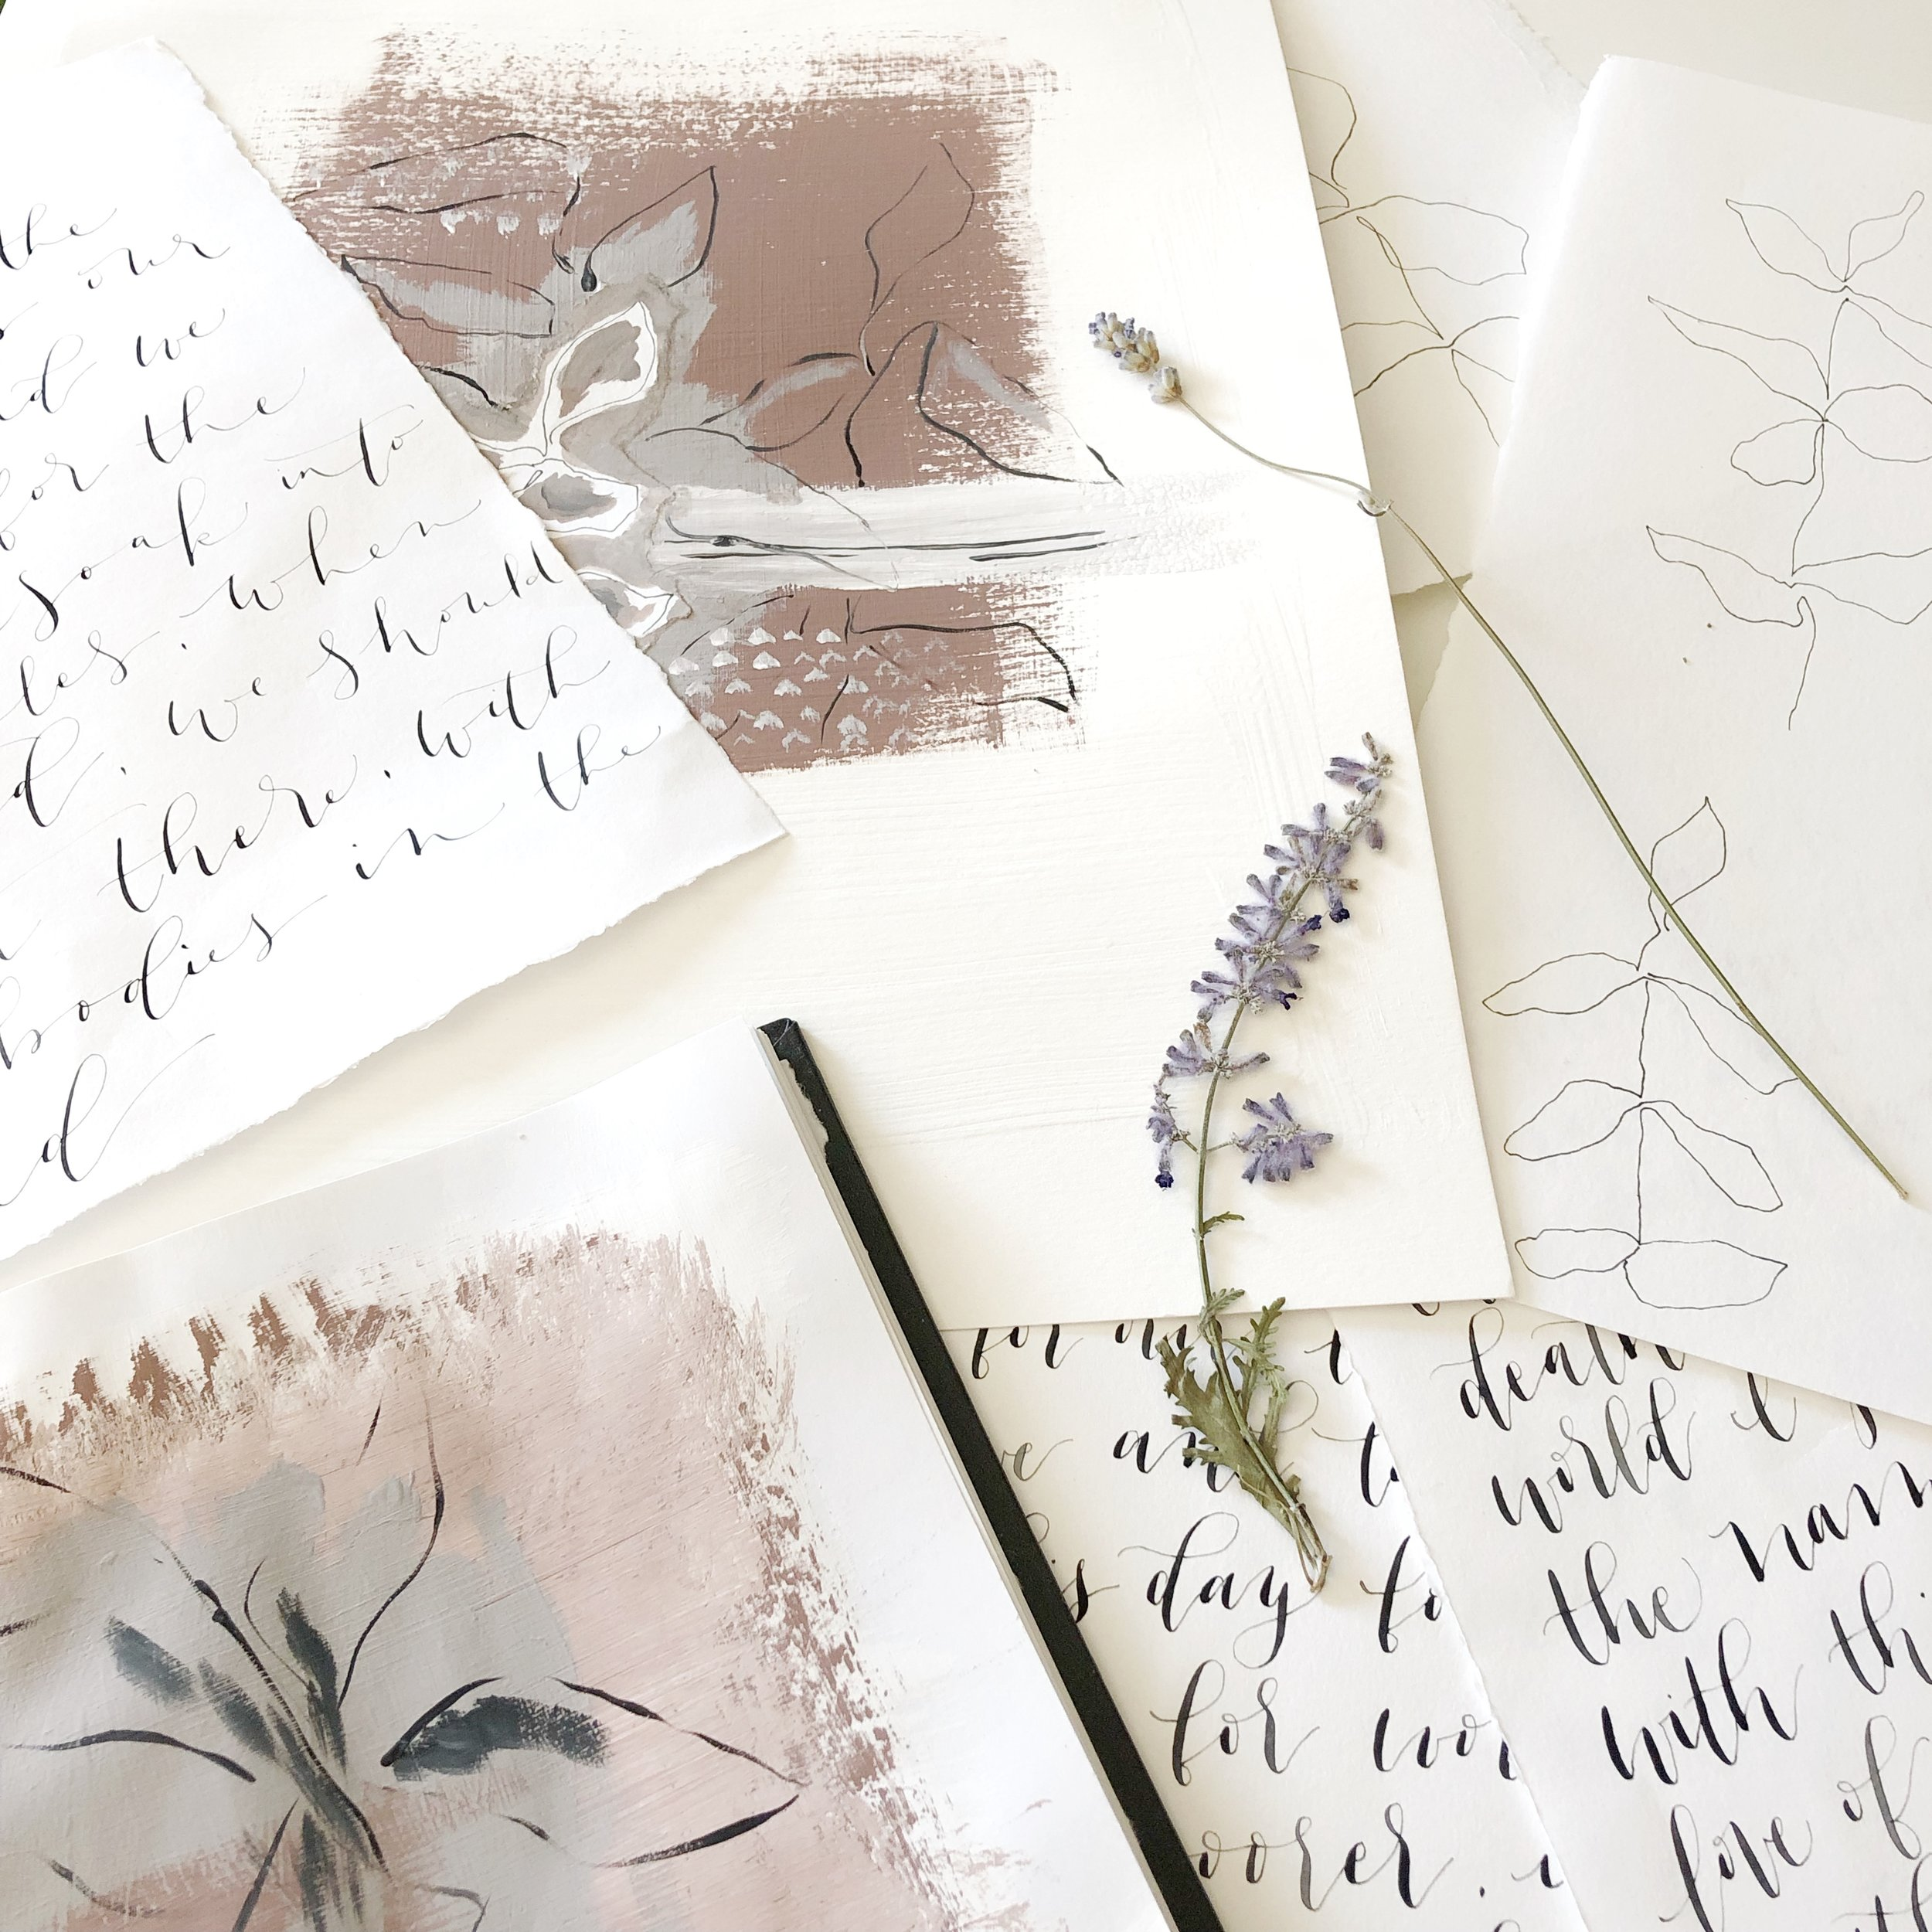 Using a dip pen and ink for drawing as well as calligraphy can be a great creative practice.